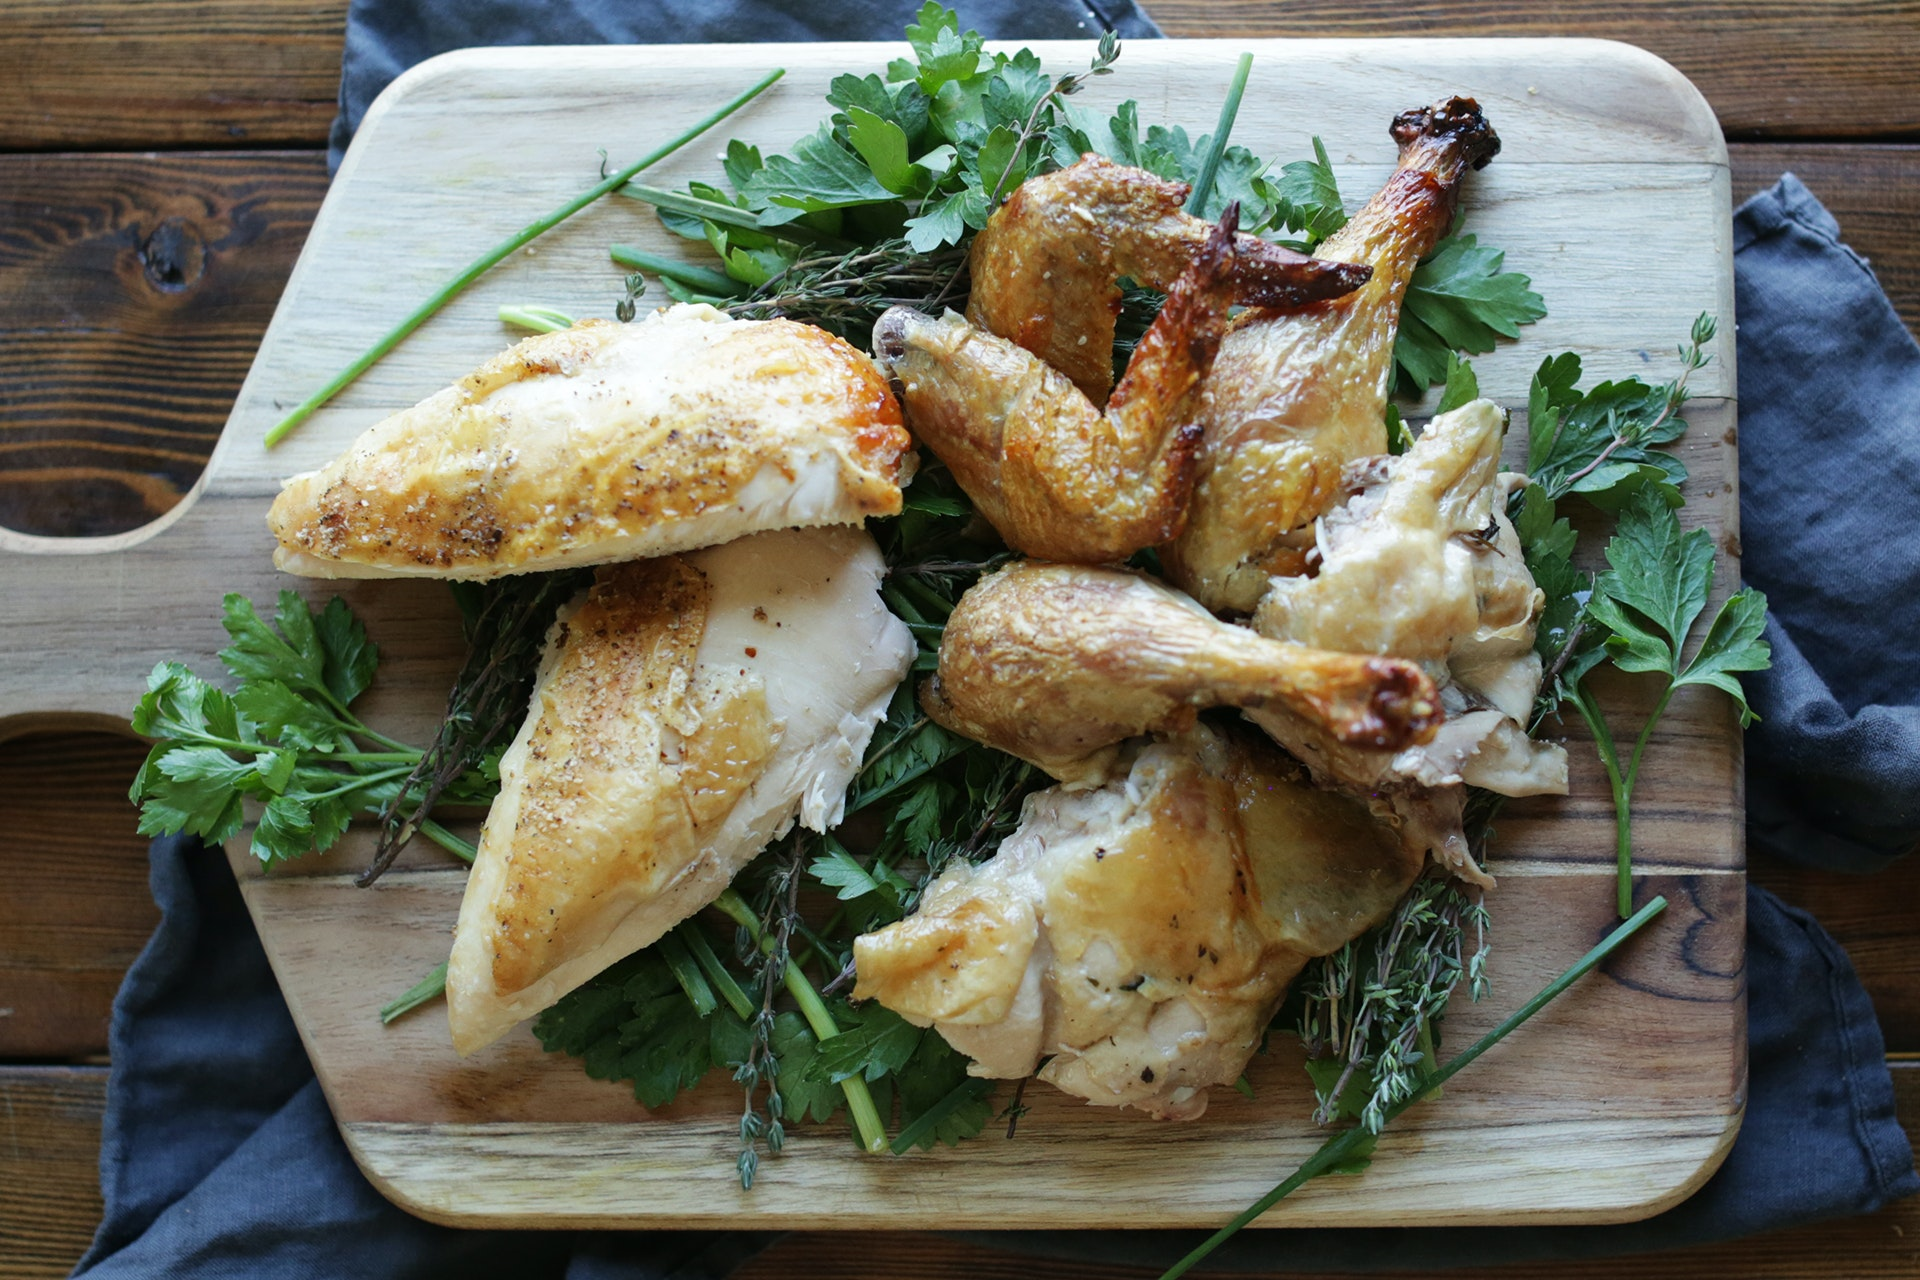 How To: Truss, Roast and Carve a Whole Chicken